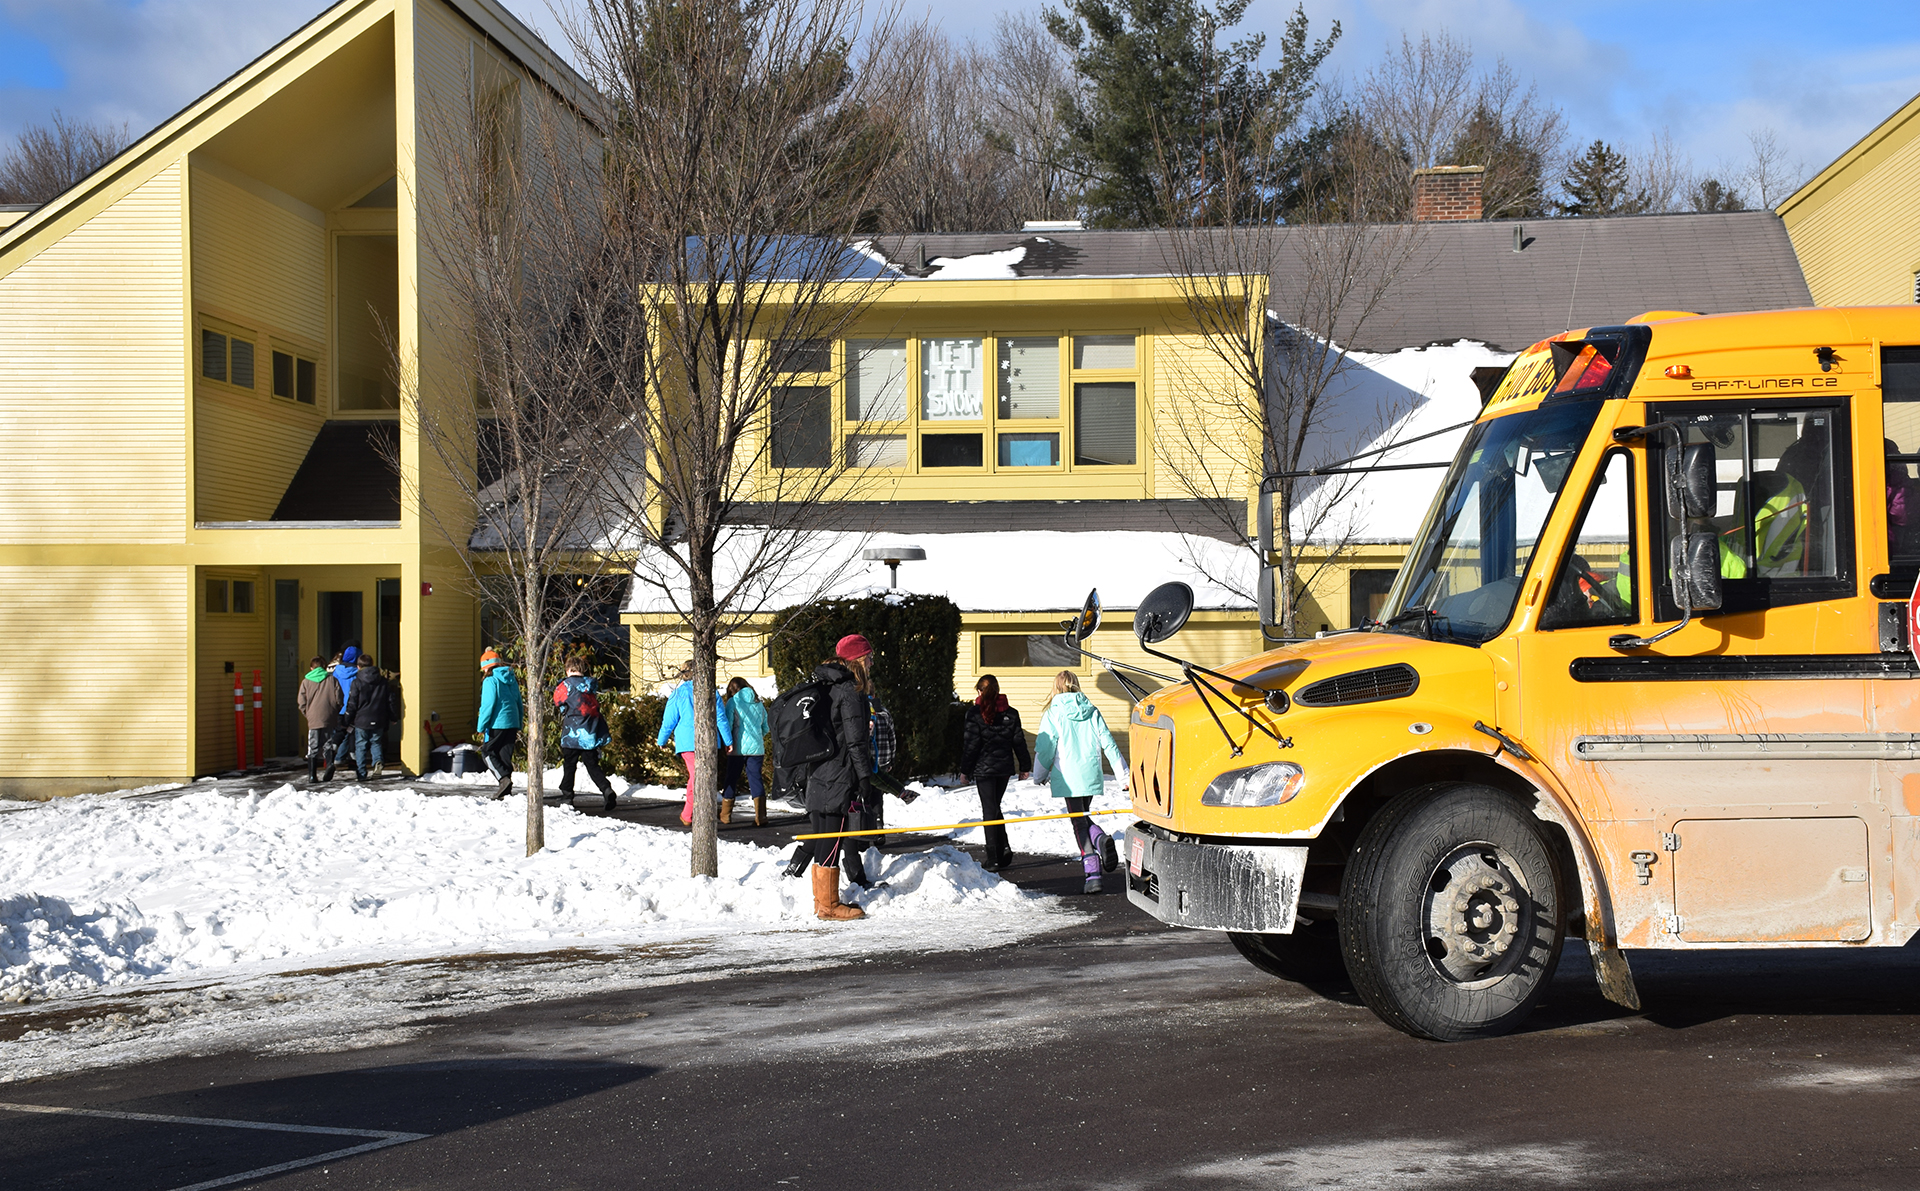 Warren Elementary School kids returning to school after a bomb scare on Friday, January 22, 2016. Kids were sheltered at the Warren Town Hall while Vermont State Police cleared the building. More information as it becomes available. Photo: Jeff Knight